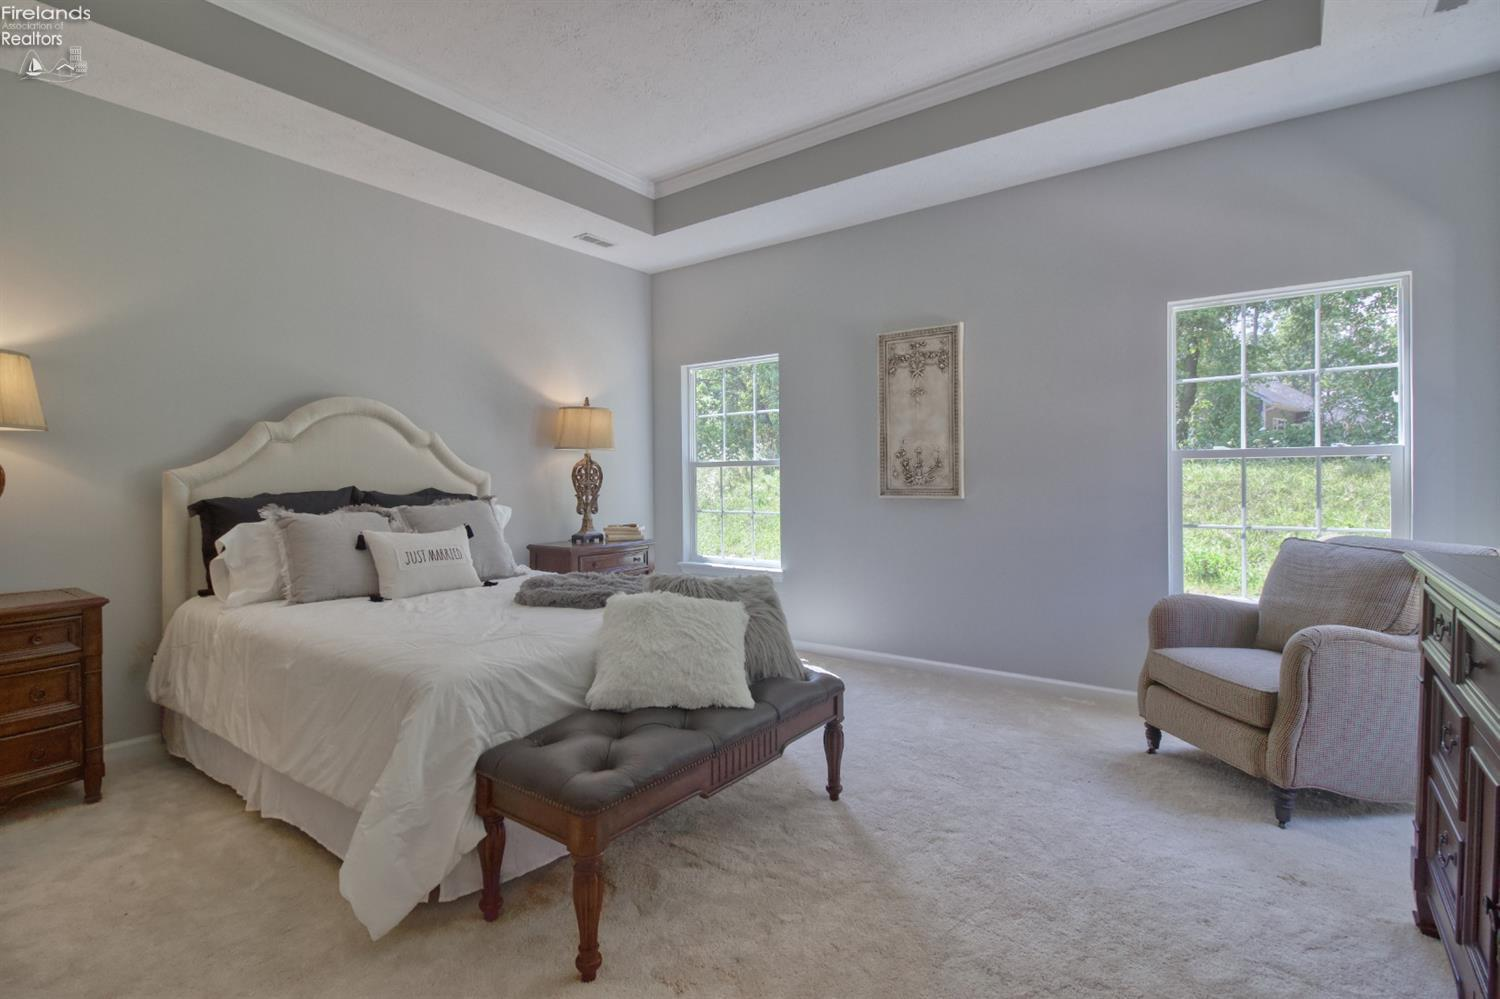 Bedroom featured in The Kimberly By Marblewood Homes in Sandusky, OH